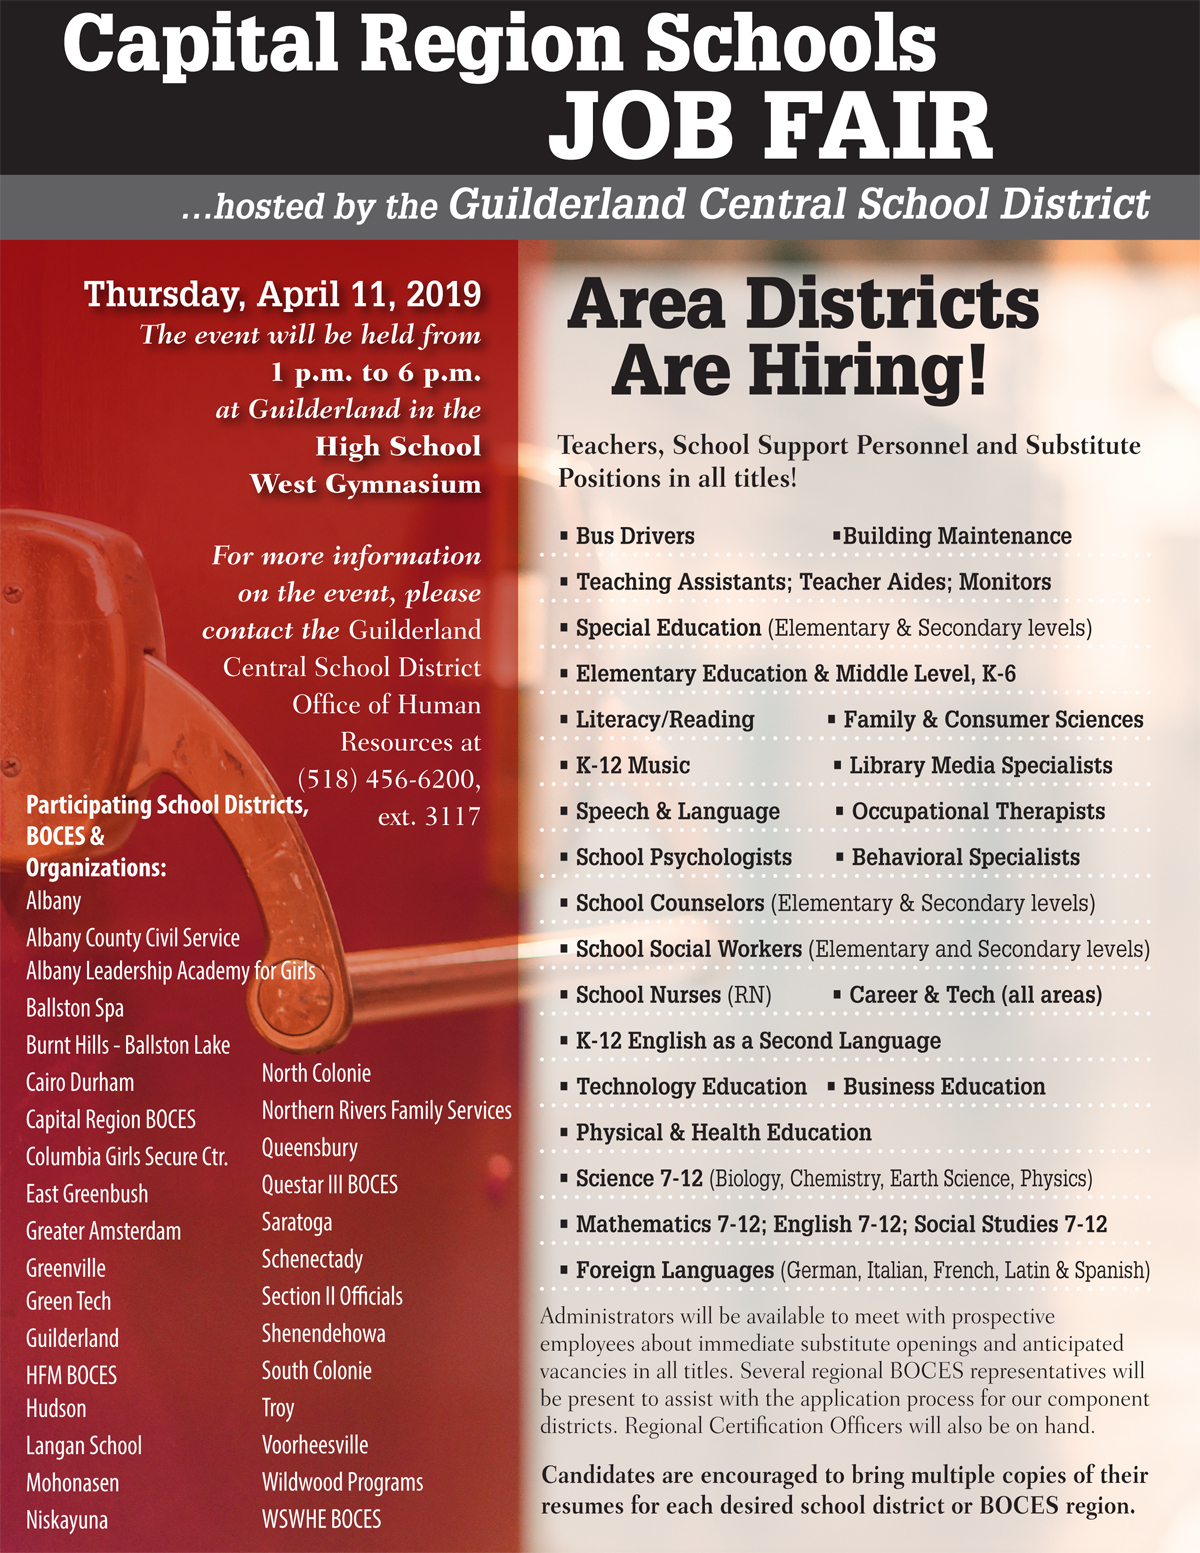 Capital Region Schools Job Fair flyer